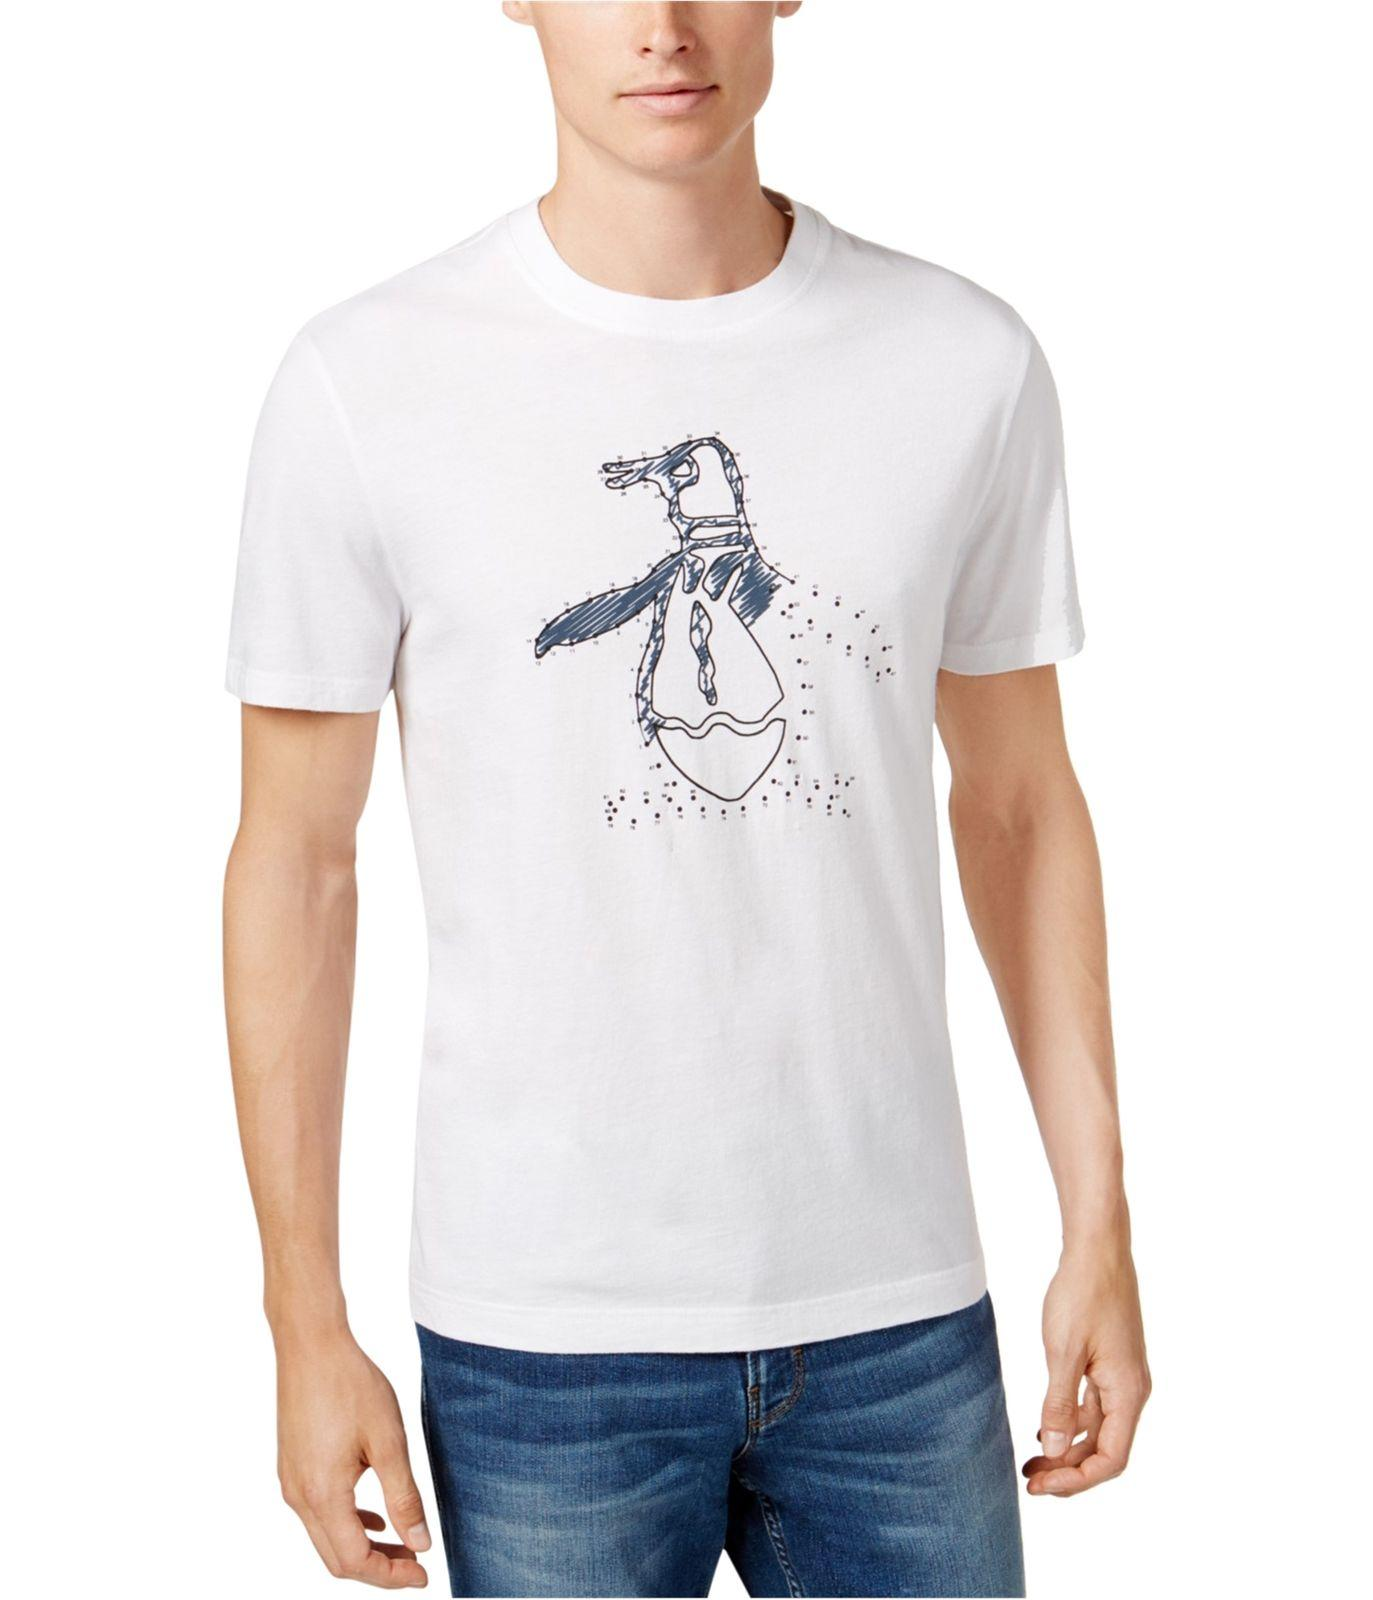 93cea6d22 Penguin Mens Connect The Dots Graphic T Shirt Streetwear Funny Print  Clothing Hip Tope Mans T Shirt Tops Tees Fun Tshirts Party T Shirts From  Biyue1, ...